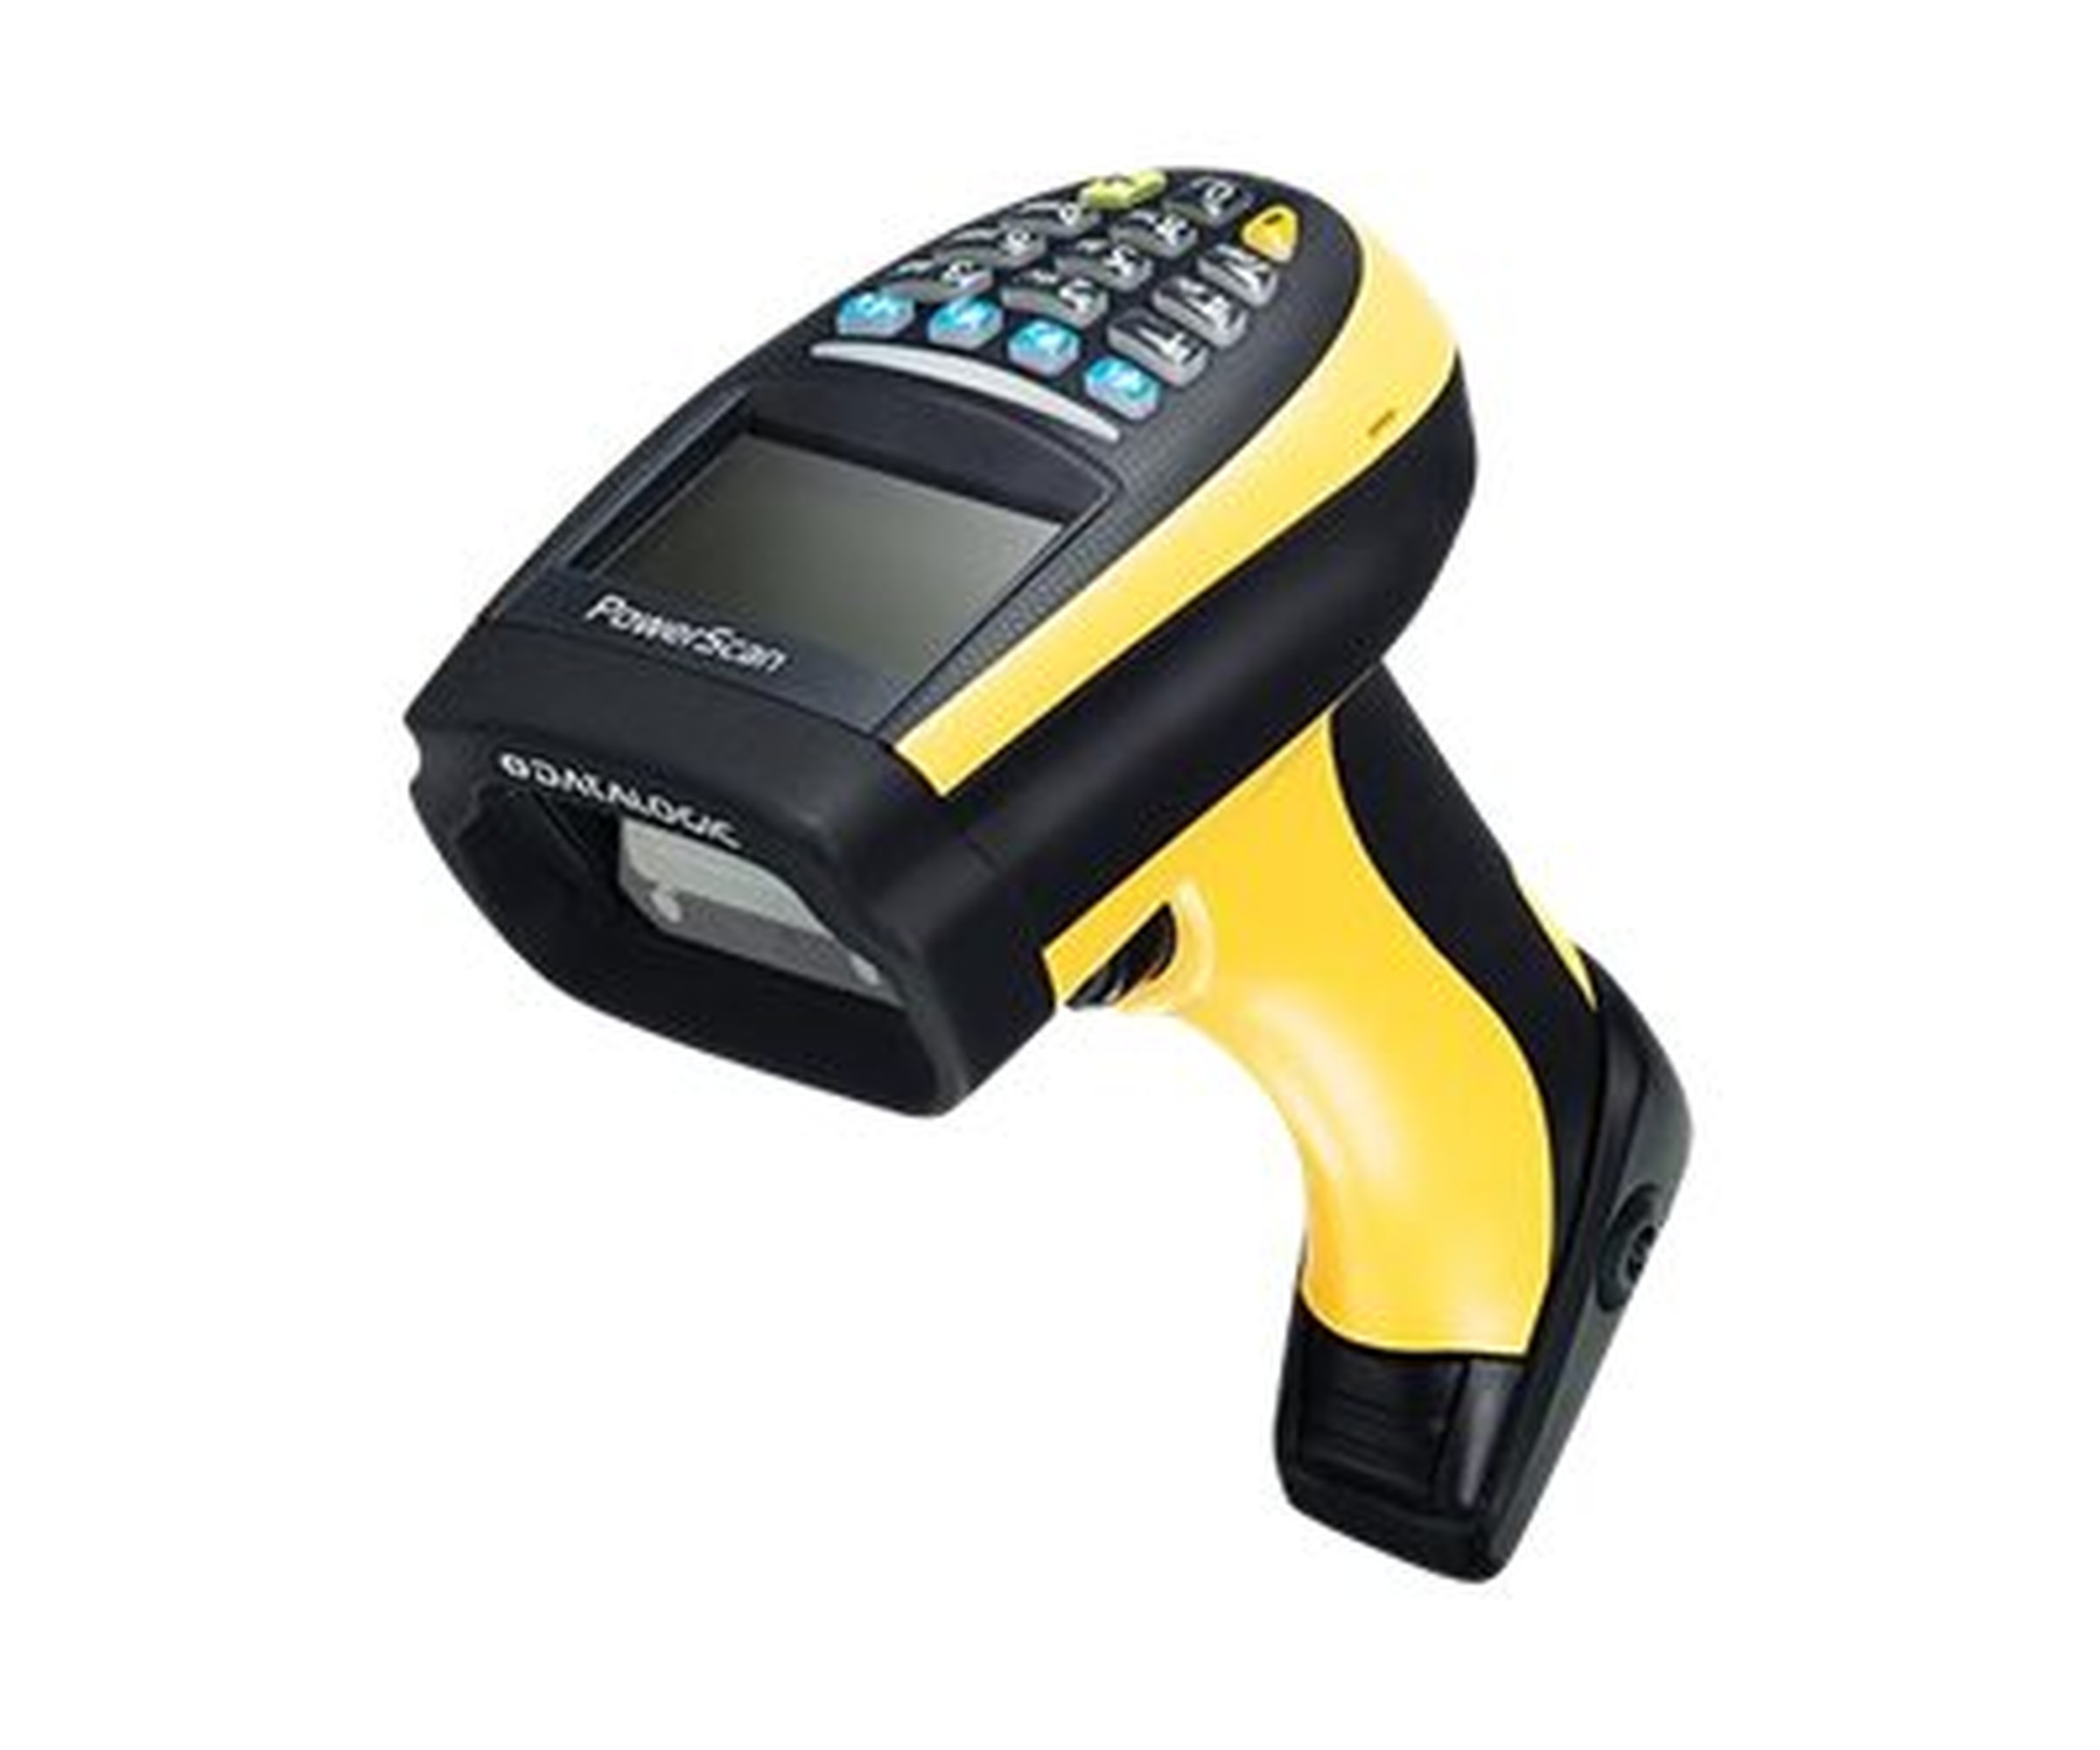 datalogic-powerscan-pm9300-default-rank-